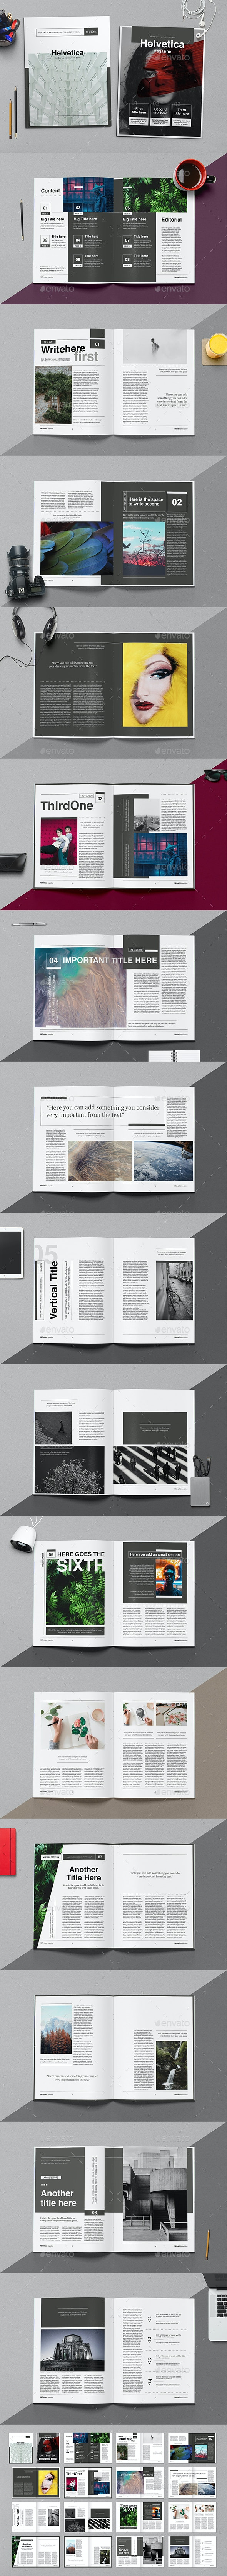 Helvetica Magazine Indesign Template - Magazines Print Templates